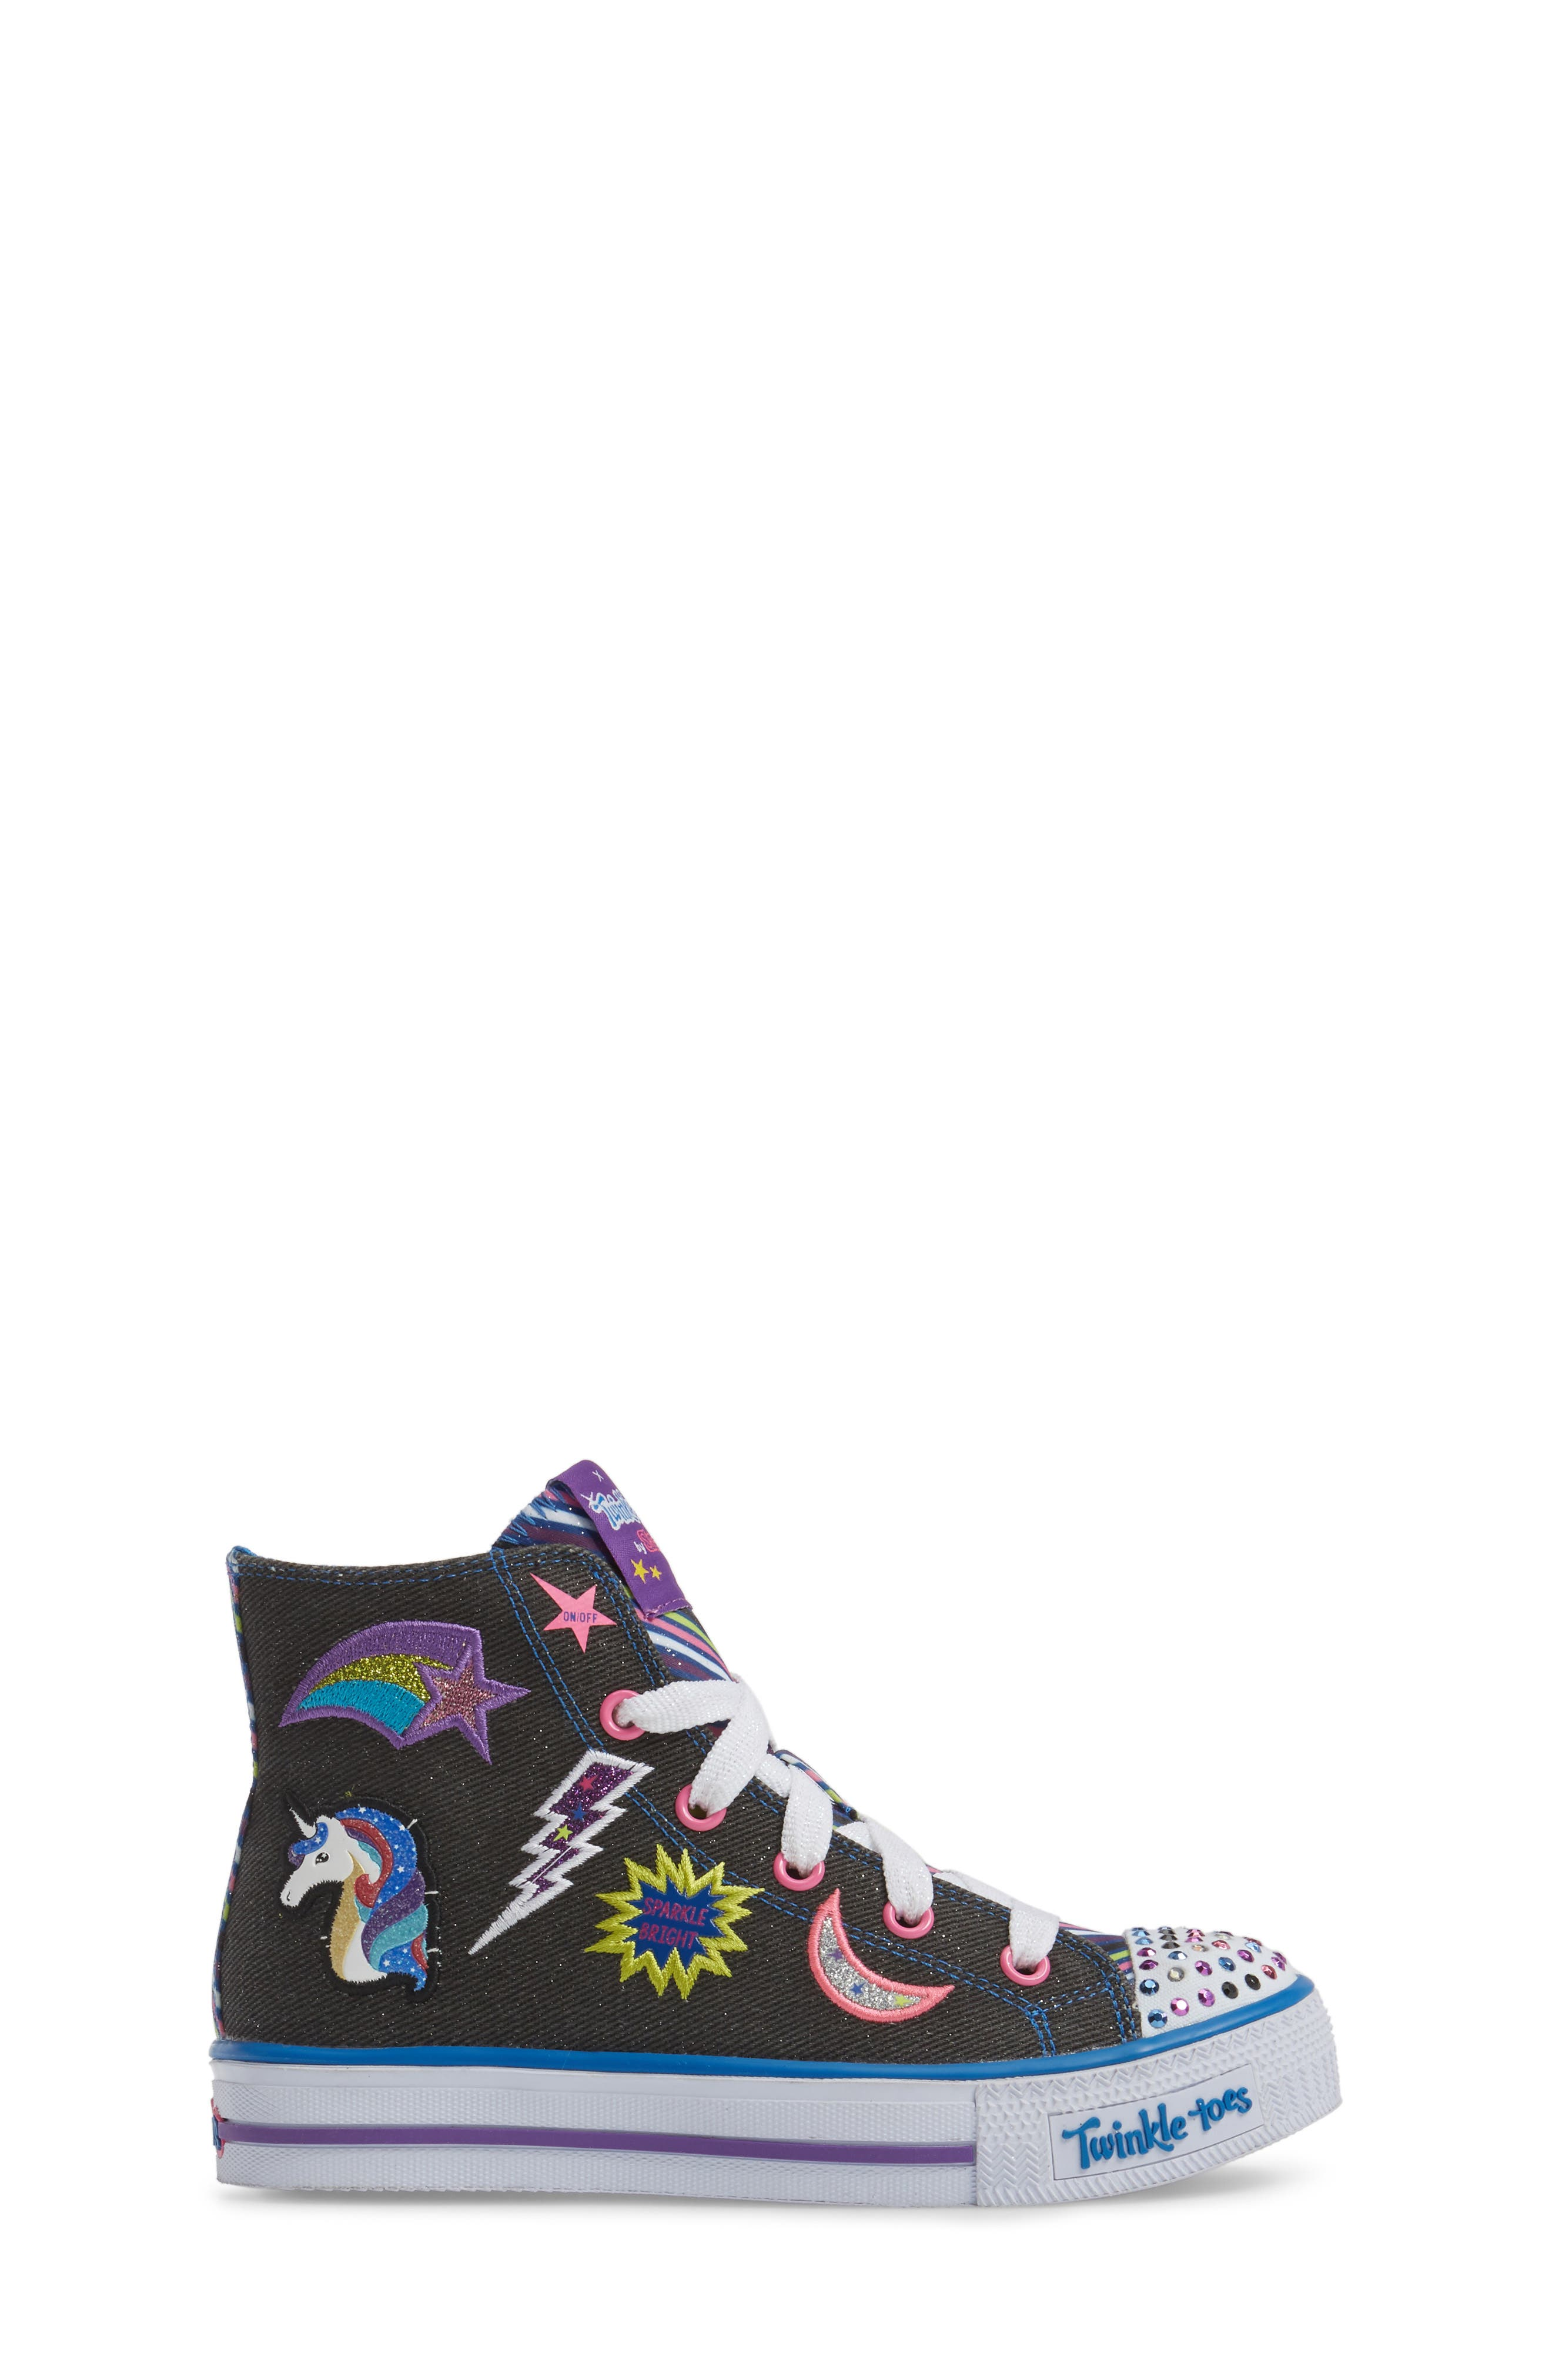 Twinkle Toes Shuffles Light-Up High Top Sneaker,                             Alternate thumbnail 3, color,                             Black Canvas